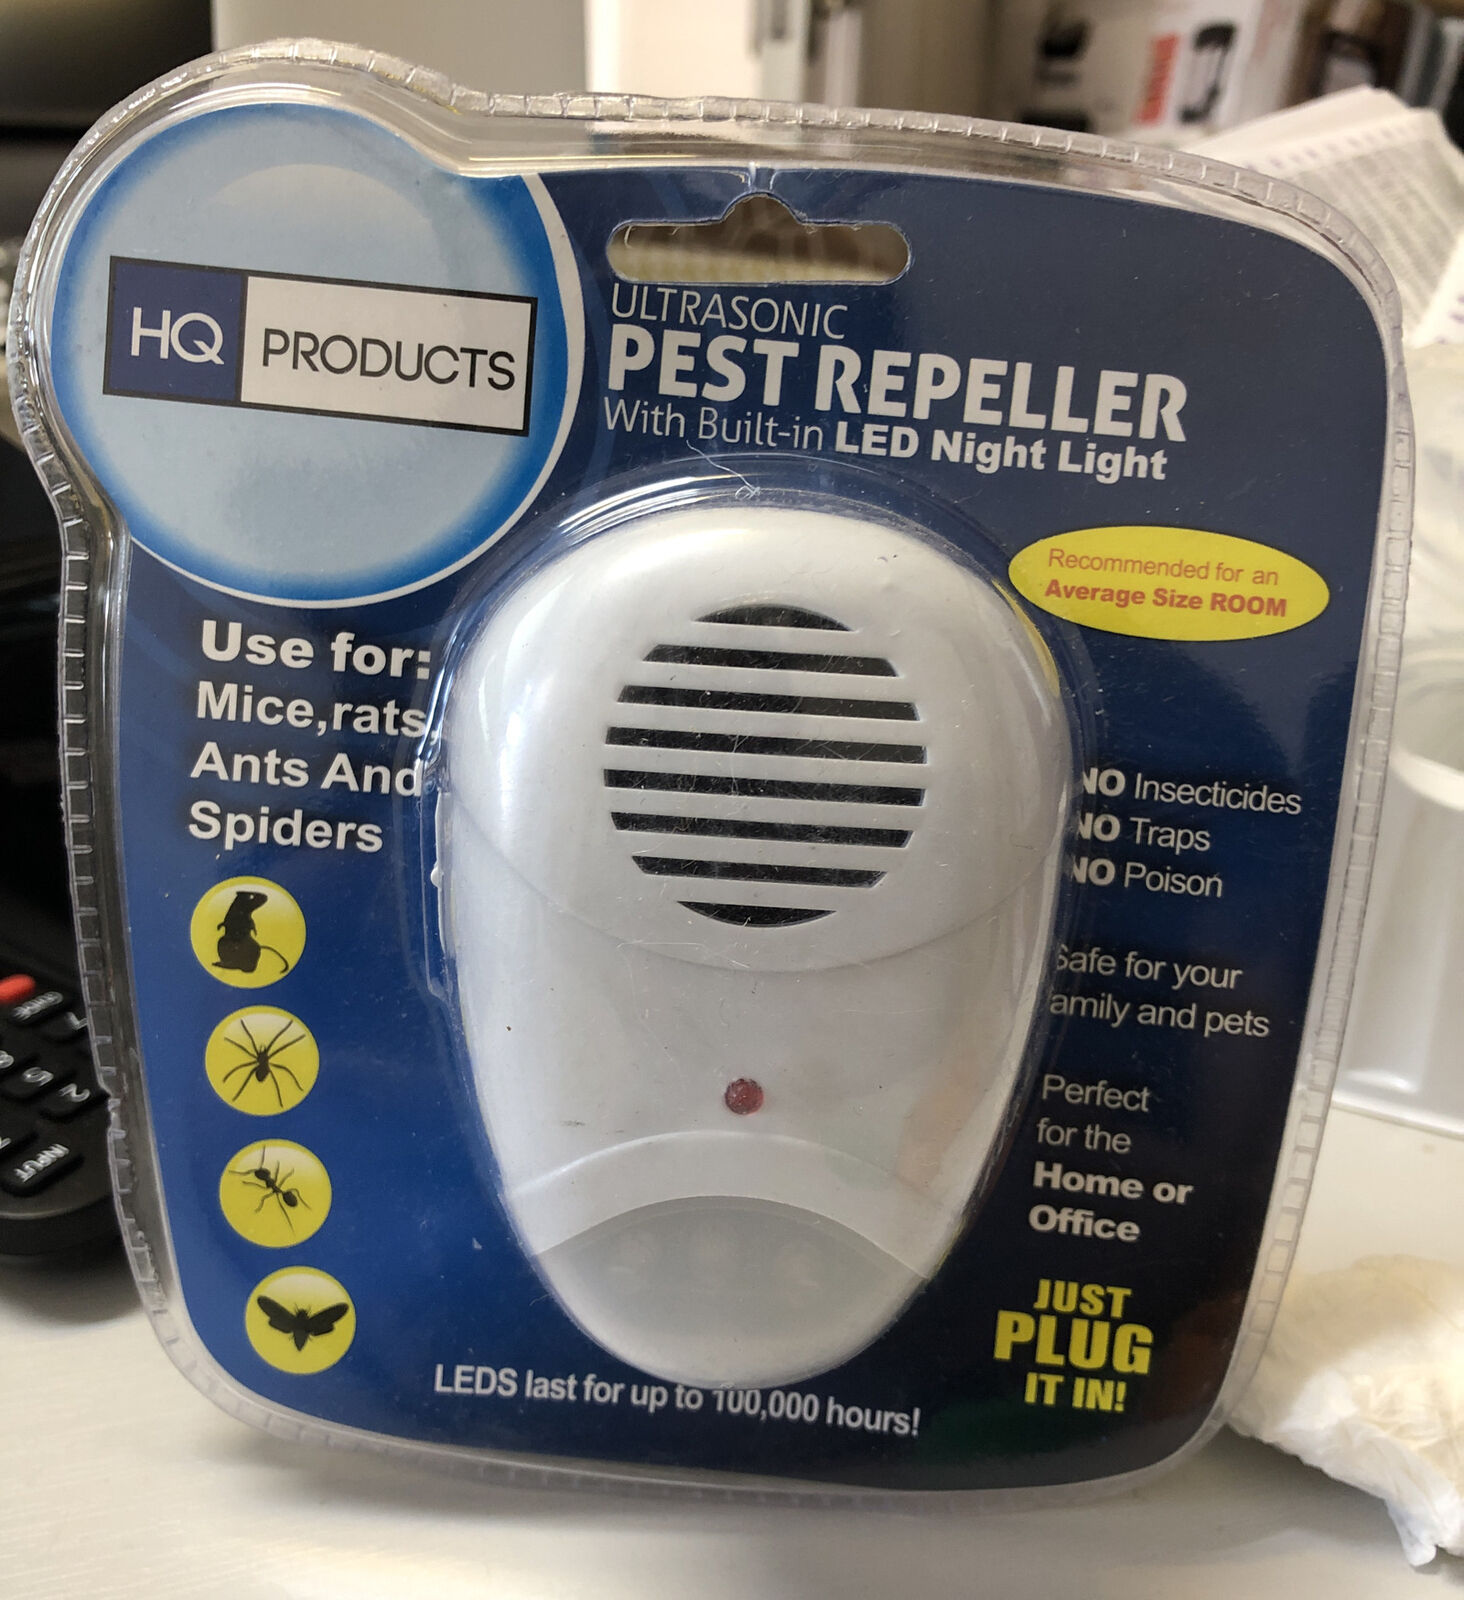 HQ Products Ultrasonic Pest Repeller with Built in Led Night Light for Mice Rats